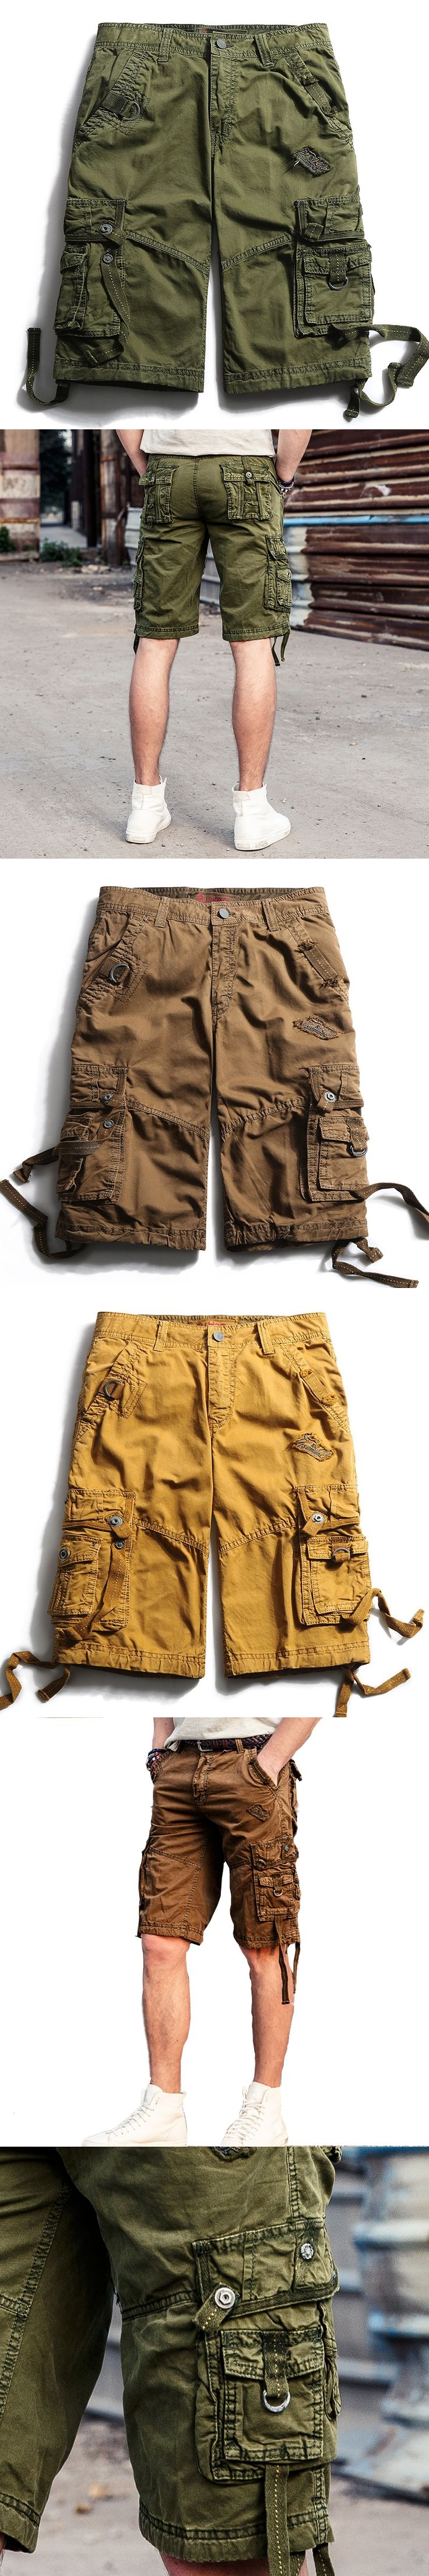 Brand clothing 2017 Men Military Shorts Summer Men's Army Cargo Shorts Workout Shorts Homme Casual Bermuda Trousers plus size 40